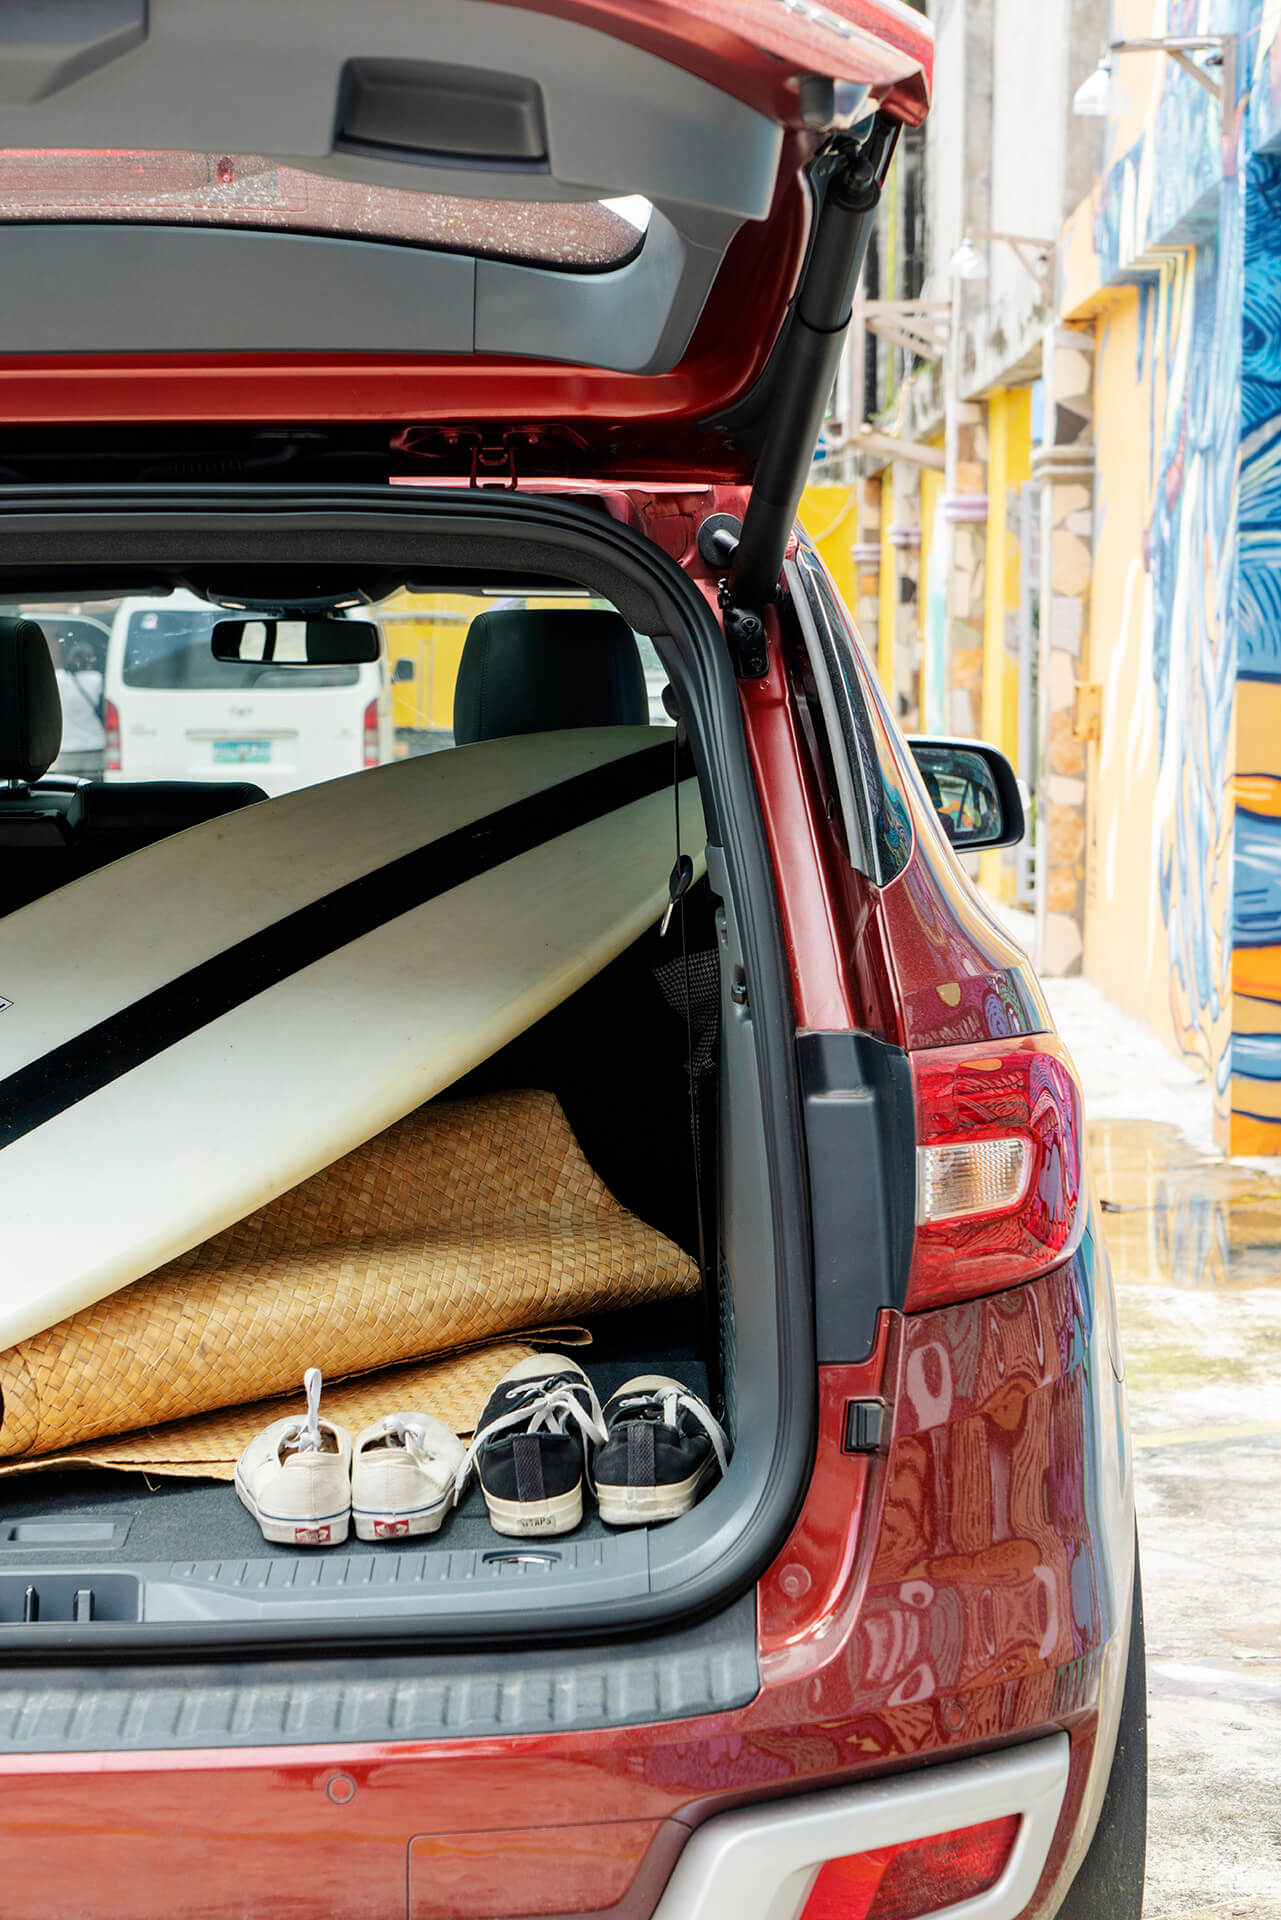 Ford Everest with its trunk open, stuffed with surf boards and other beach paraphernaliah